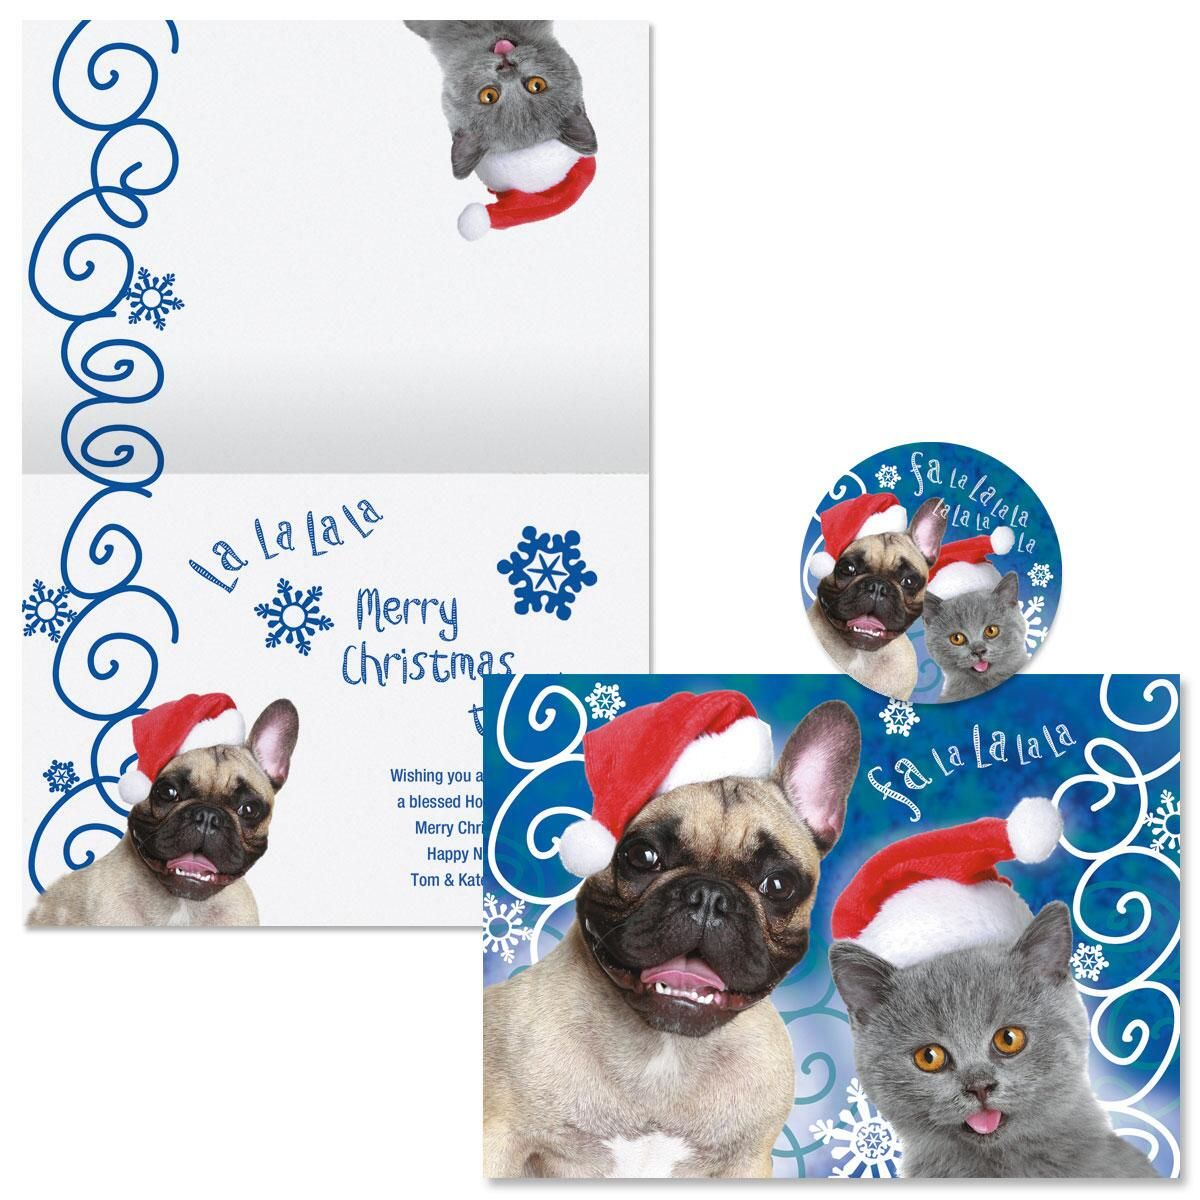 Welcoming Christmas Christmas Cards - Nonpersonalized